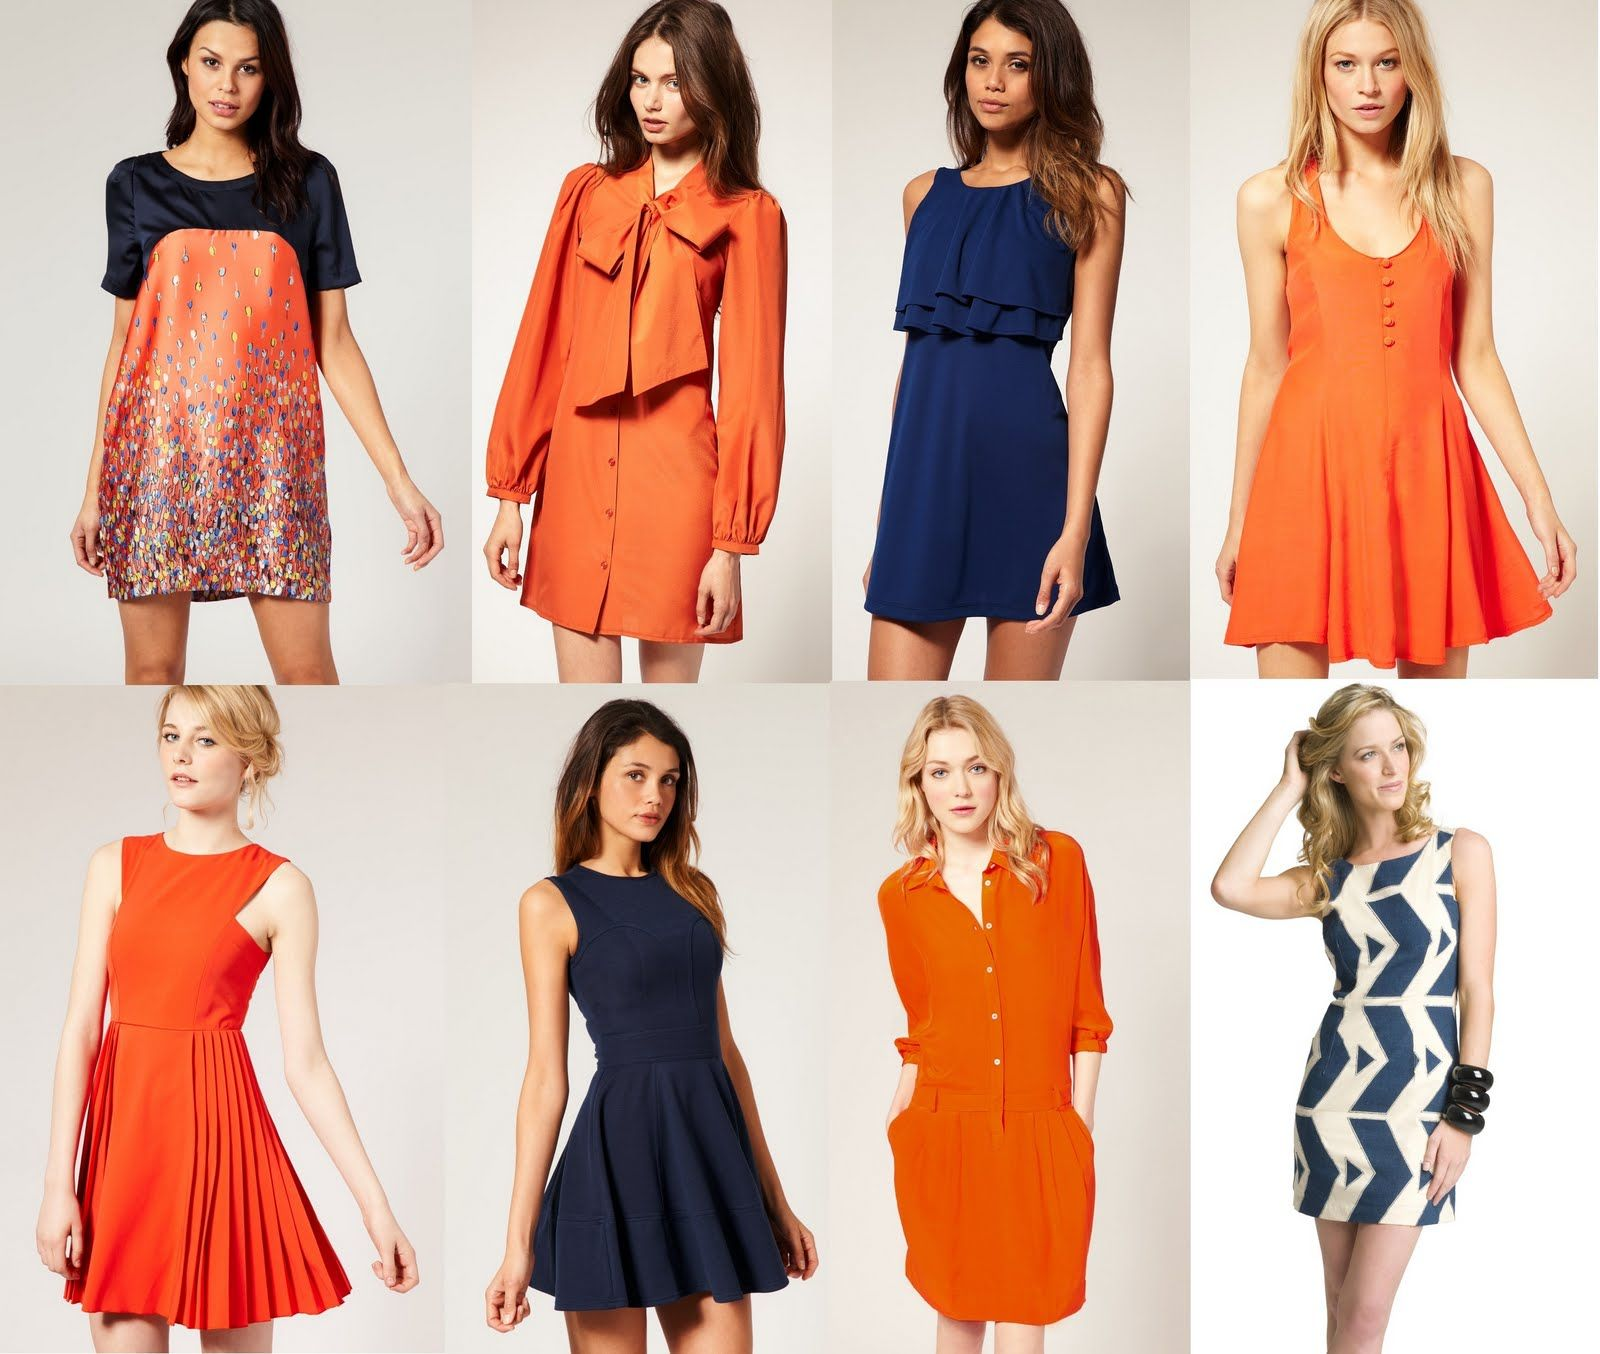 War Eagle Orange And Blue Auburn Game Day Dresses Gameday